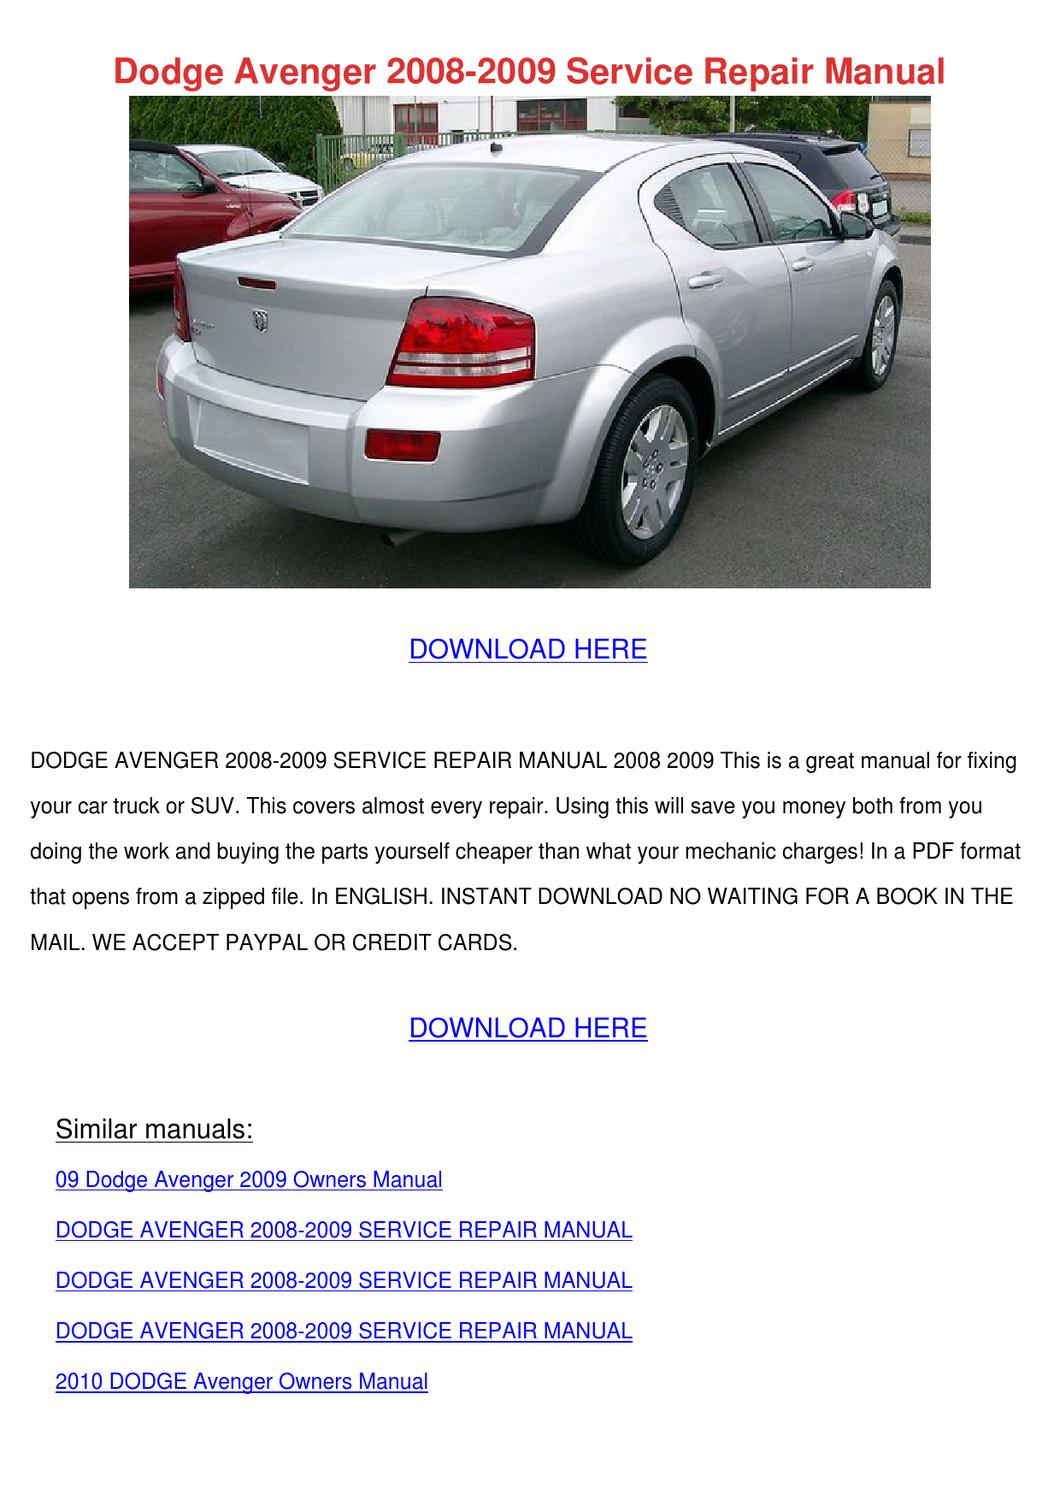 dodge avenger 2008 2009 service repair manual by lavonia laramie issuu rh issuu com dodge avenger 2008 repair manual dodge avenger 2008 owners manual pdf